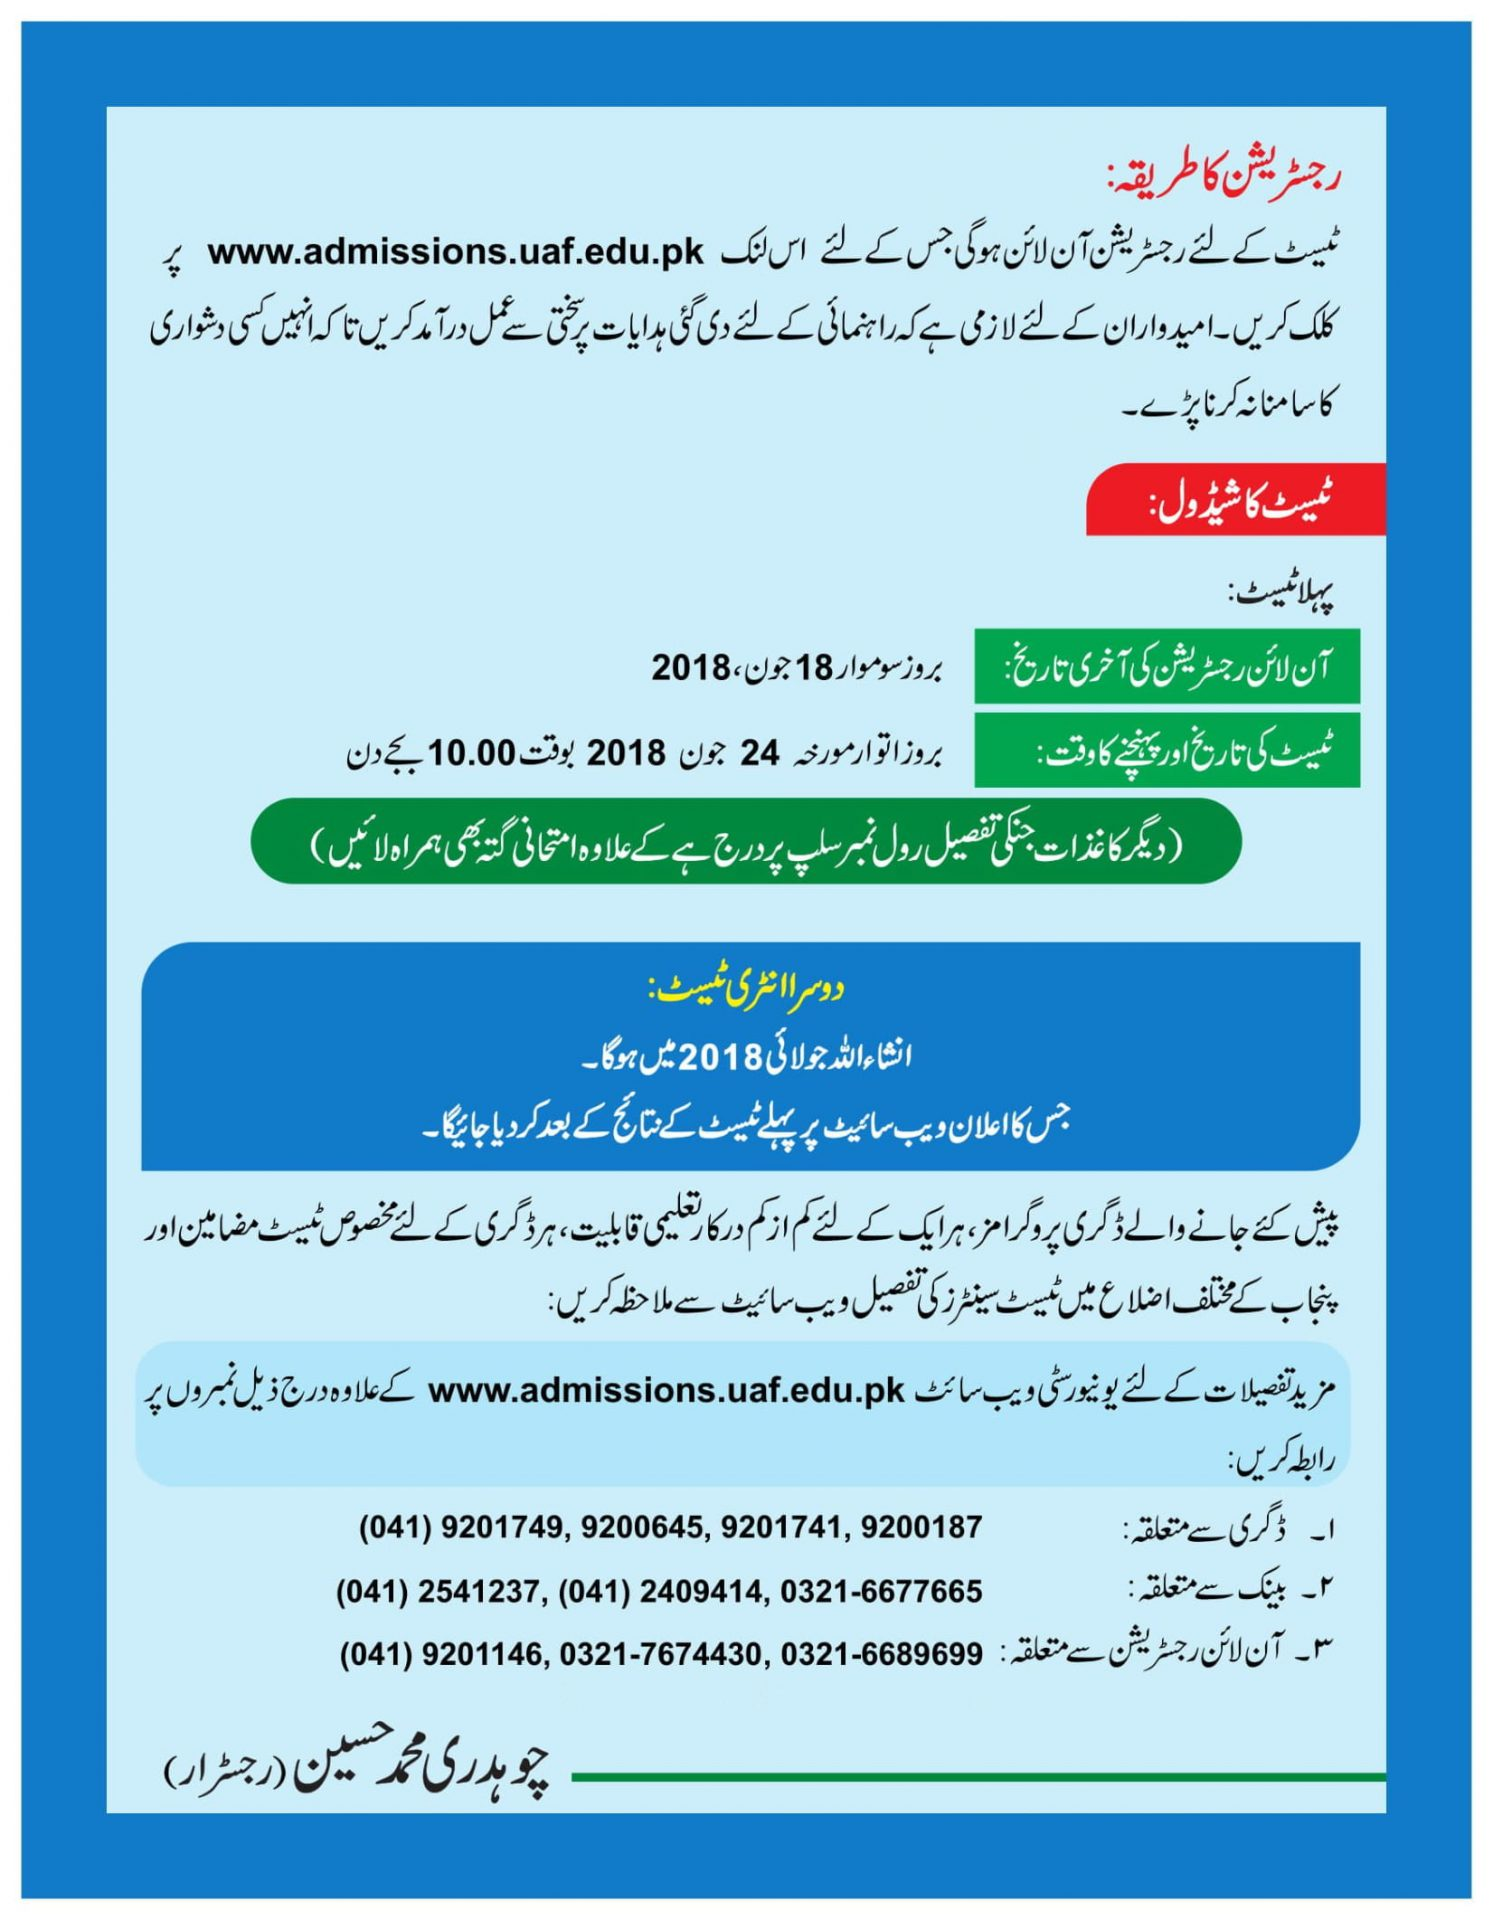 University Of Agriculture Faisalabad UAF Admissions 2018 in urdu